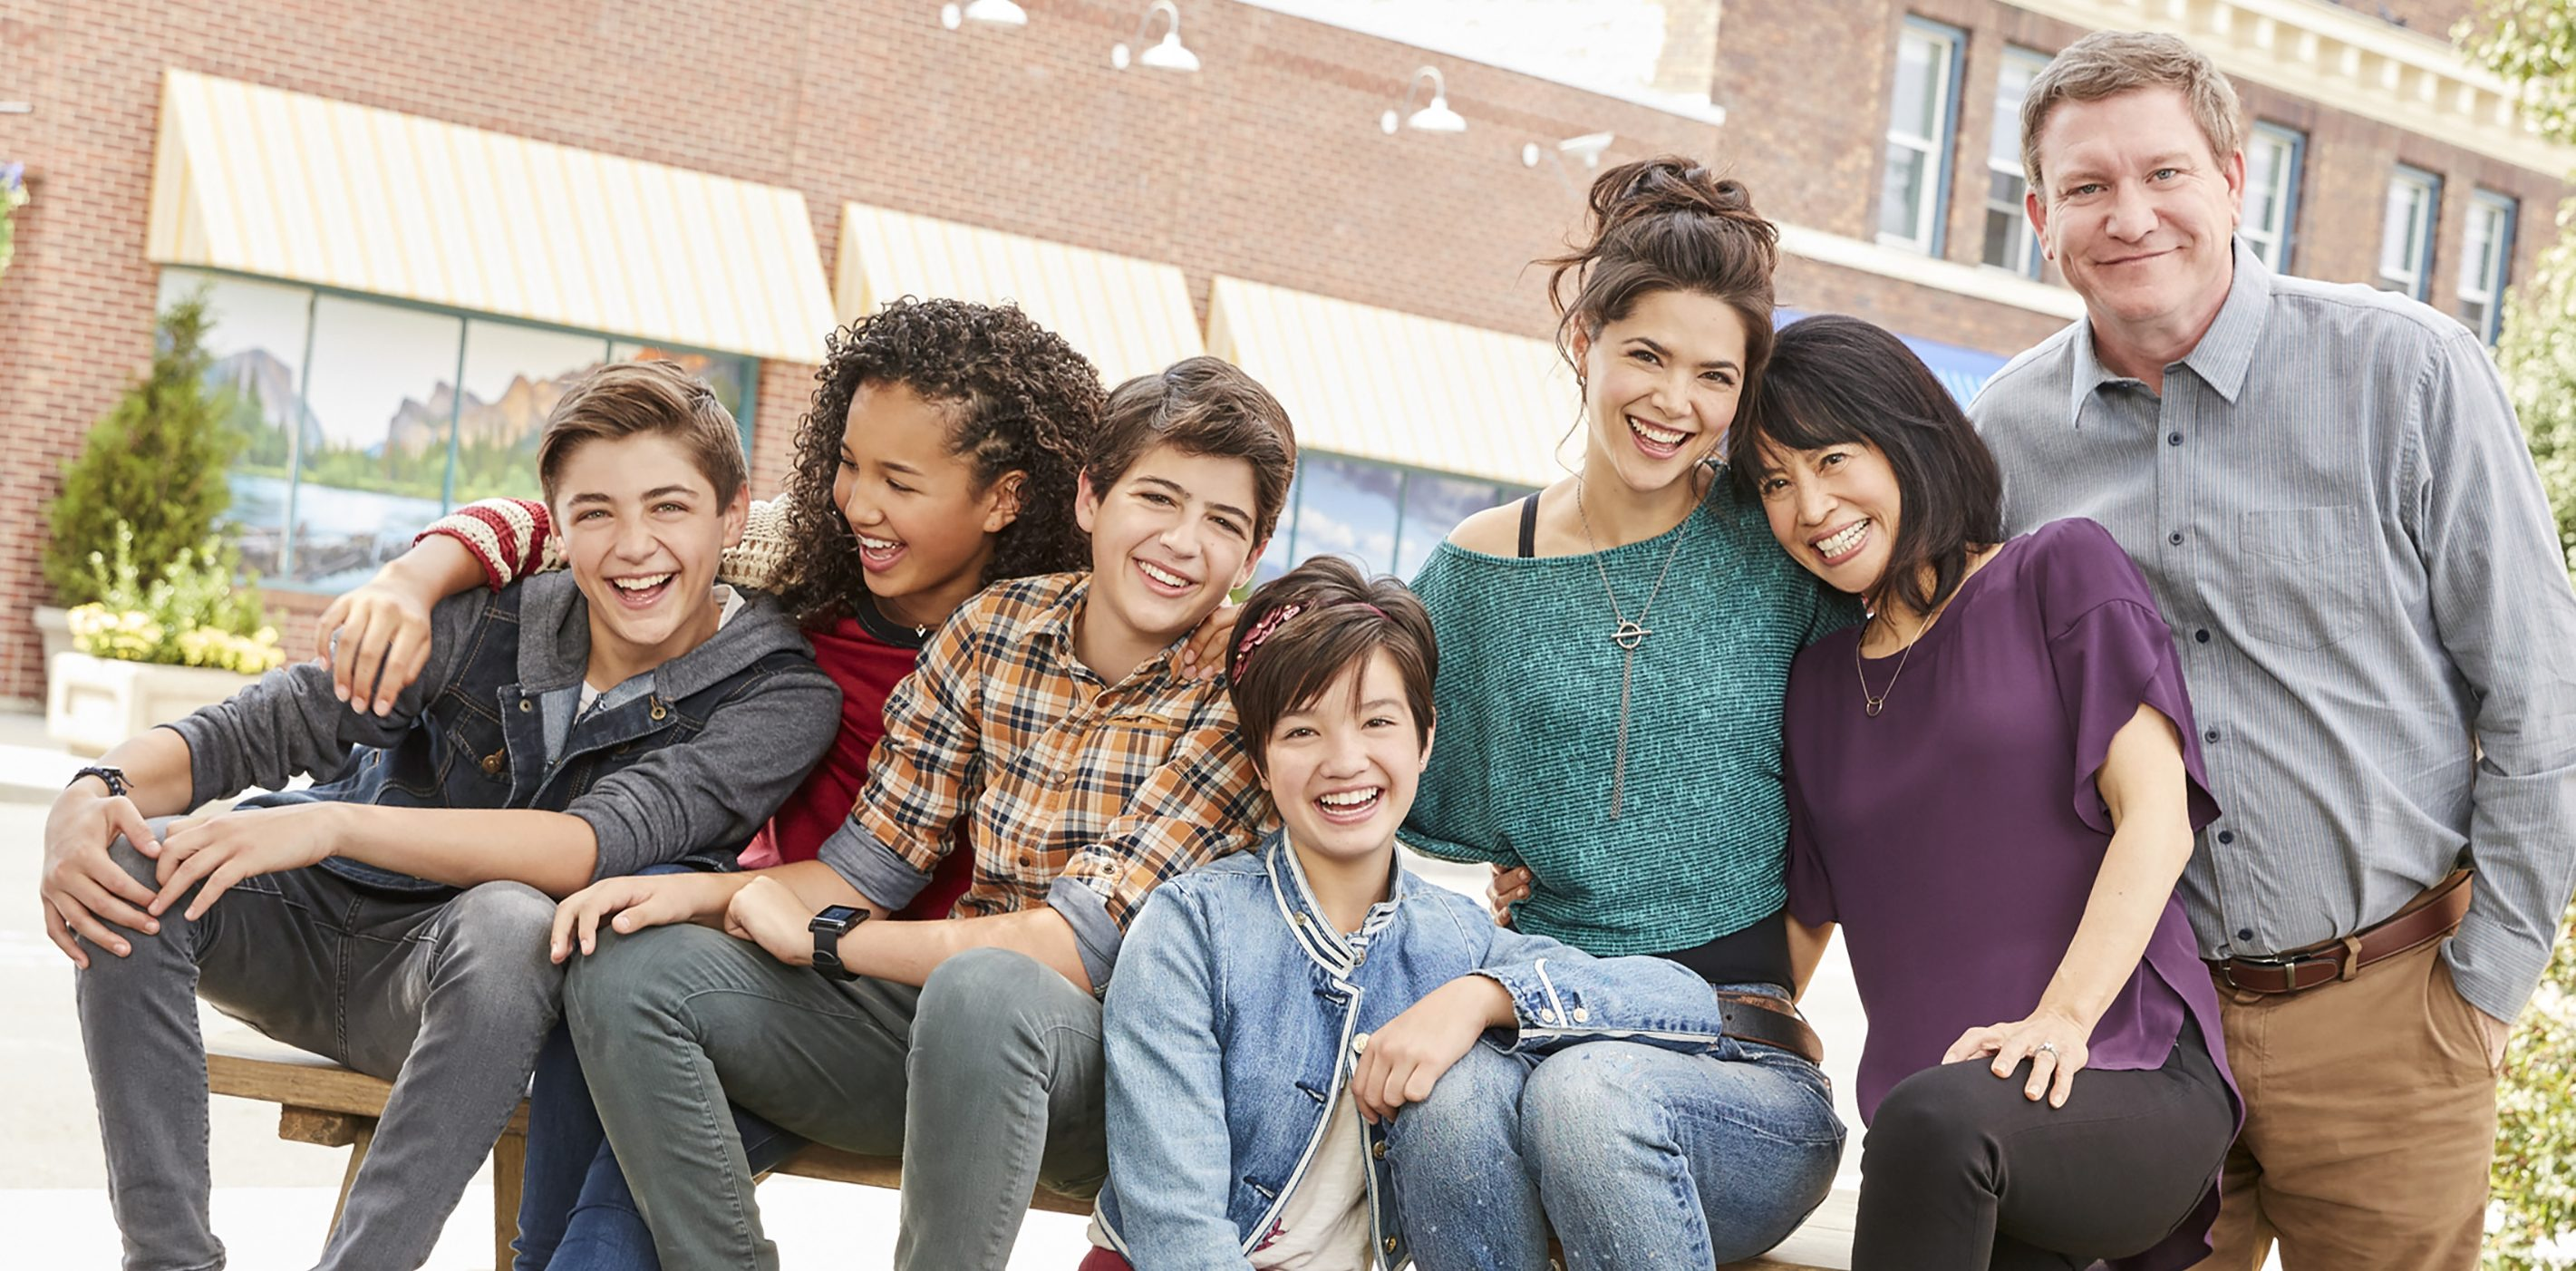 Andi Mack – Not Your Typical Disney Channel Show